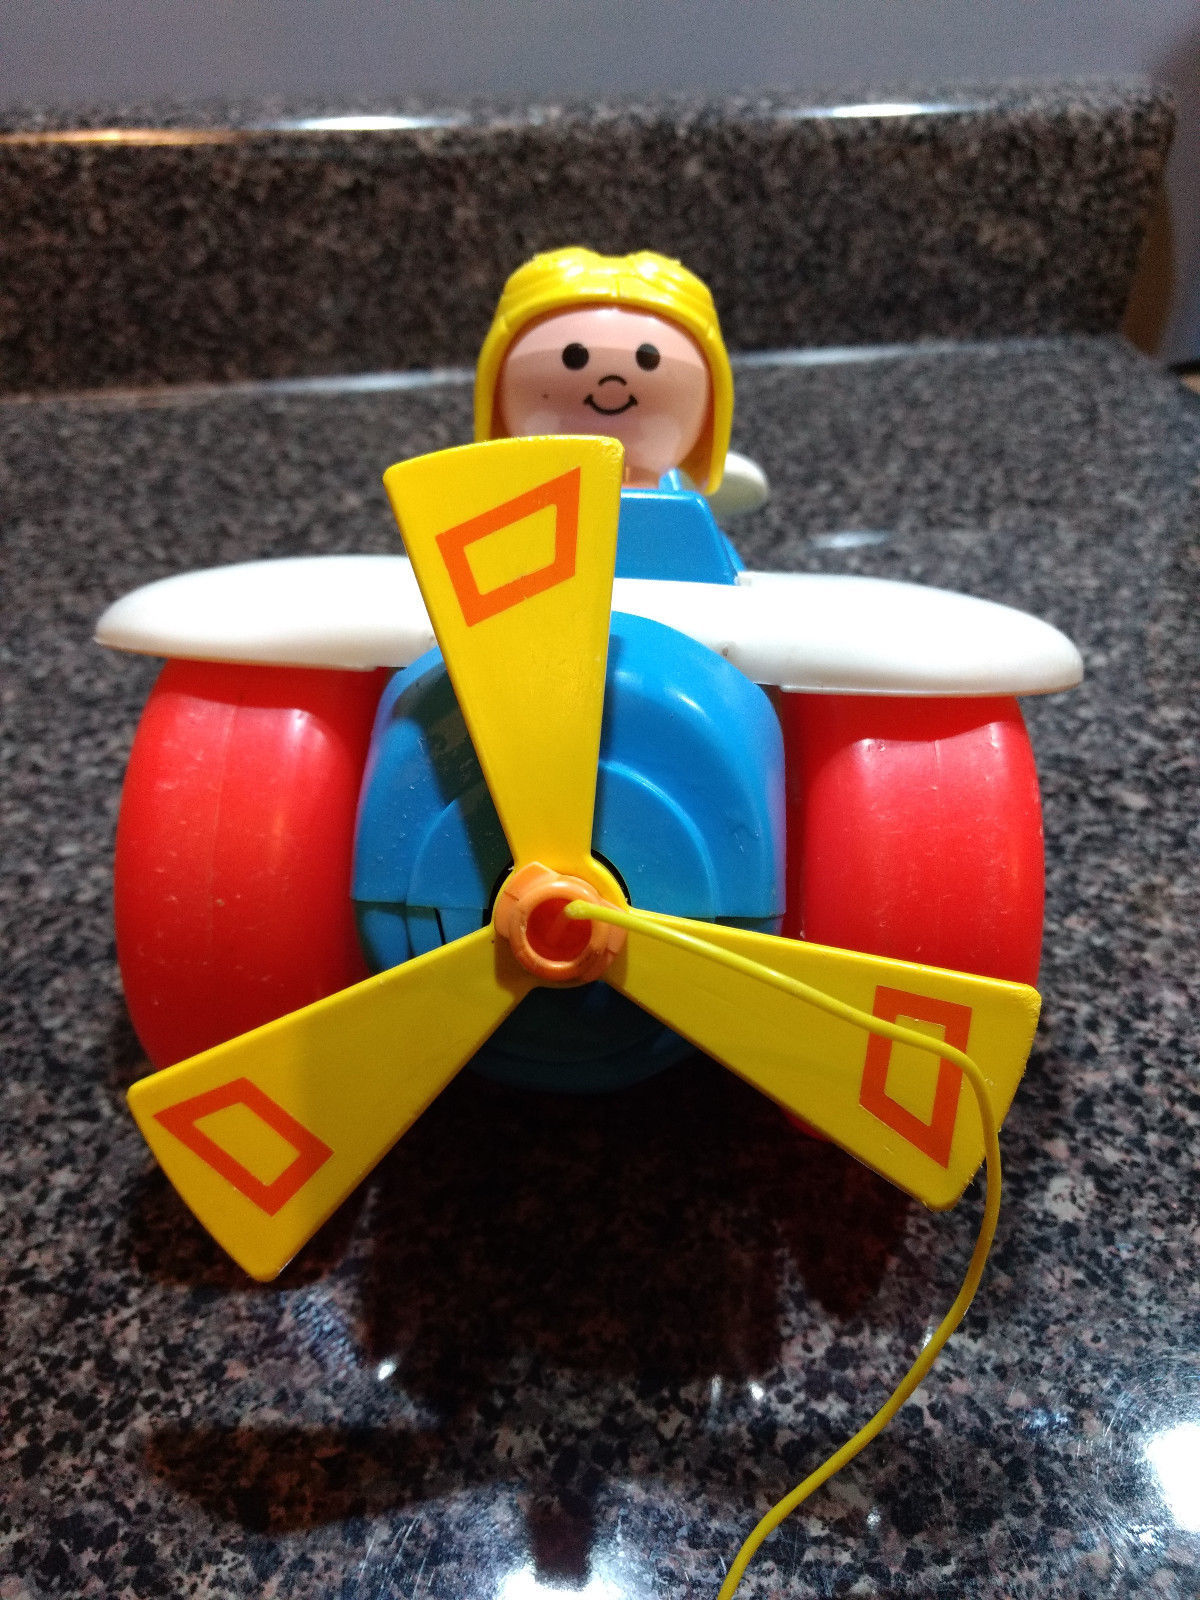 Vintage 1980 Fisher Price Airplane Plane ✈️ Pull Along Toy Toddler Children's